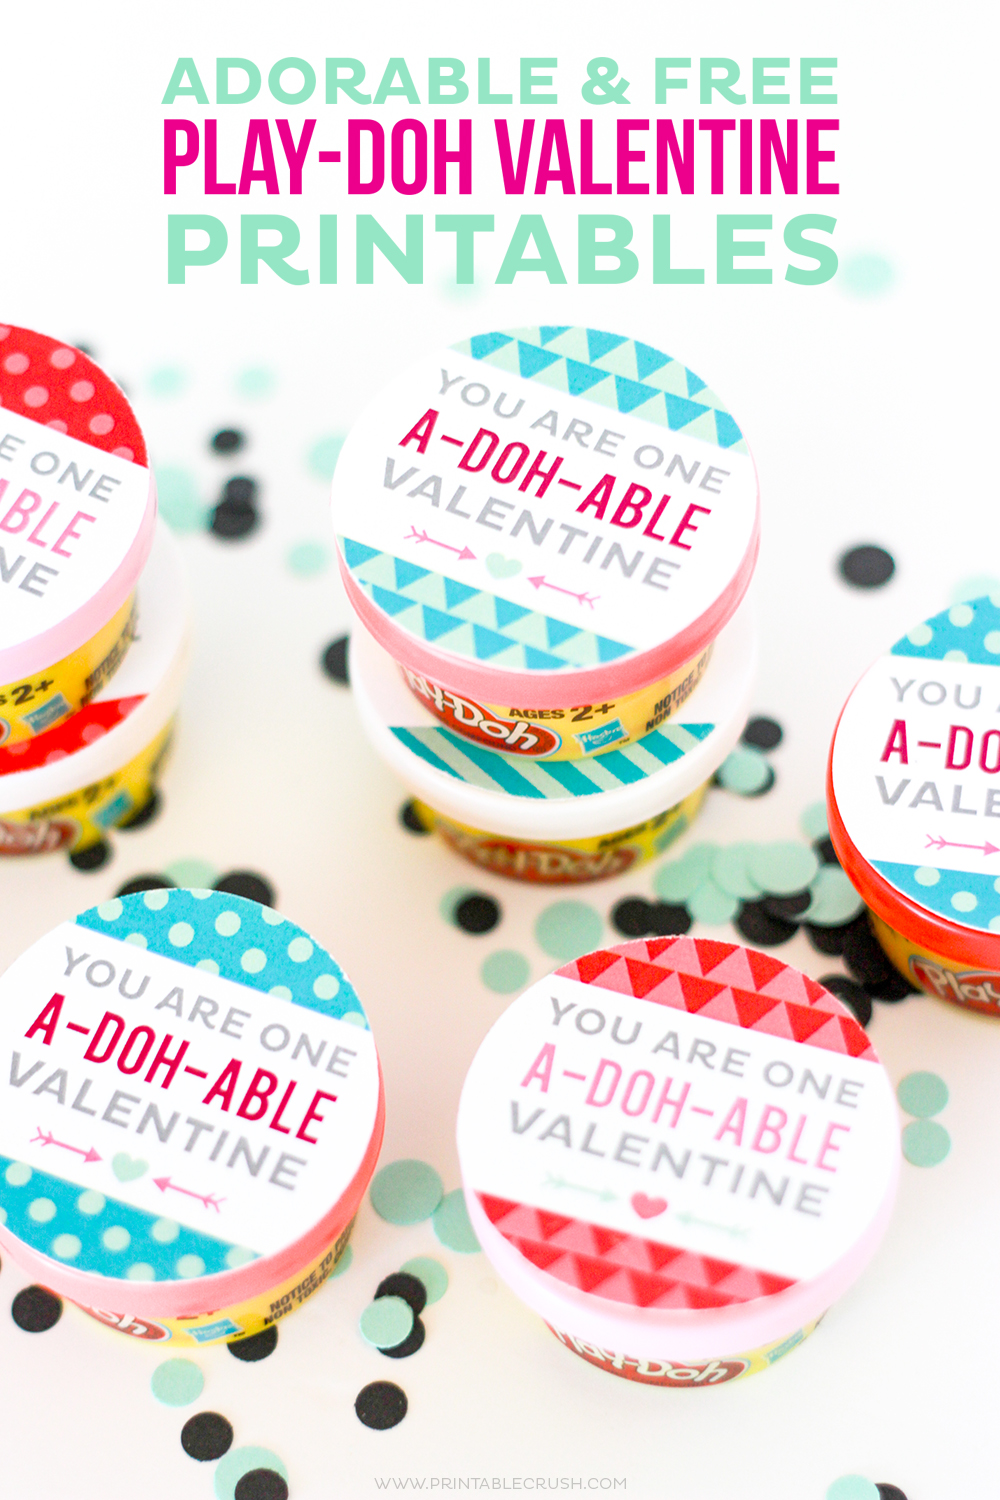 Adorable and FREE Play-doh Valentine Printables